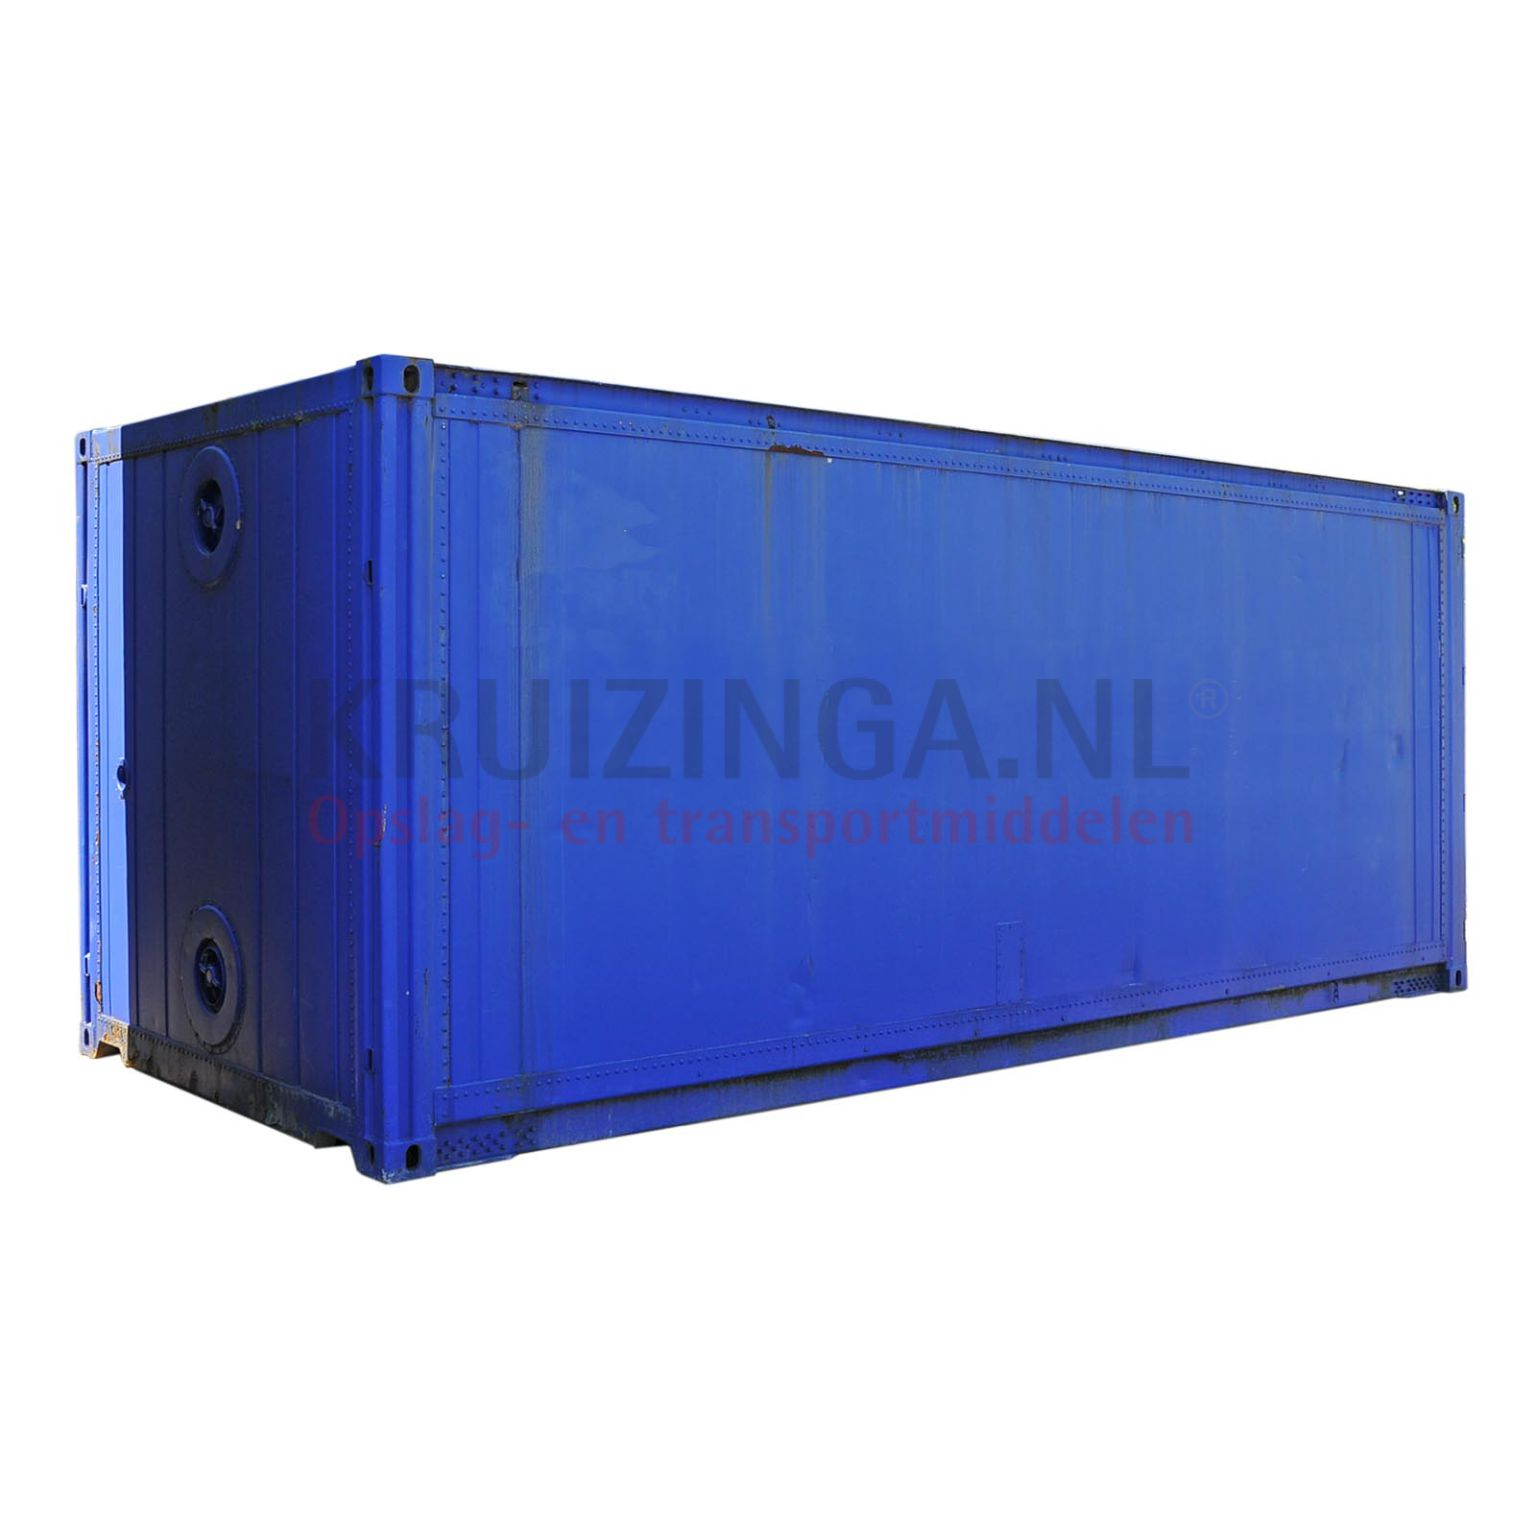 container isolierter umweltcontainer 20 fu gebraucht. Black Bedroom Furniture Sets. Home Design Ideas